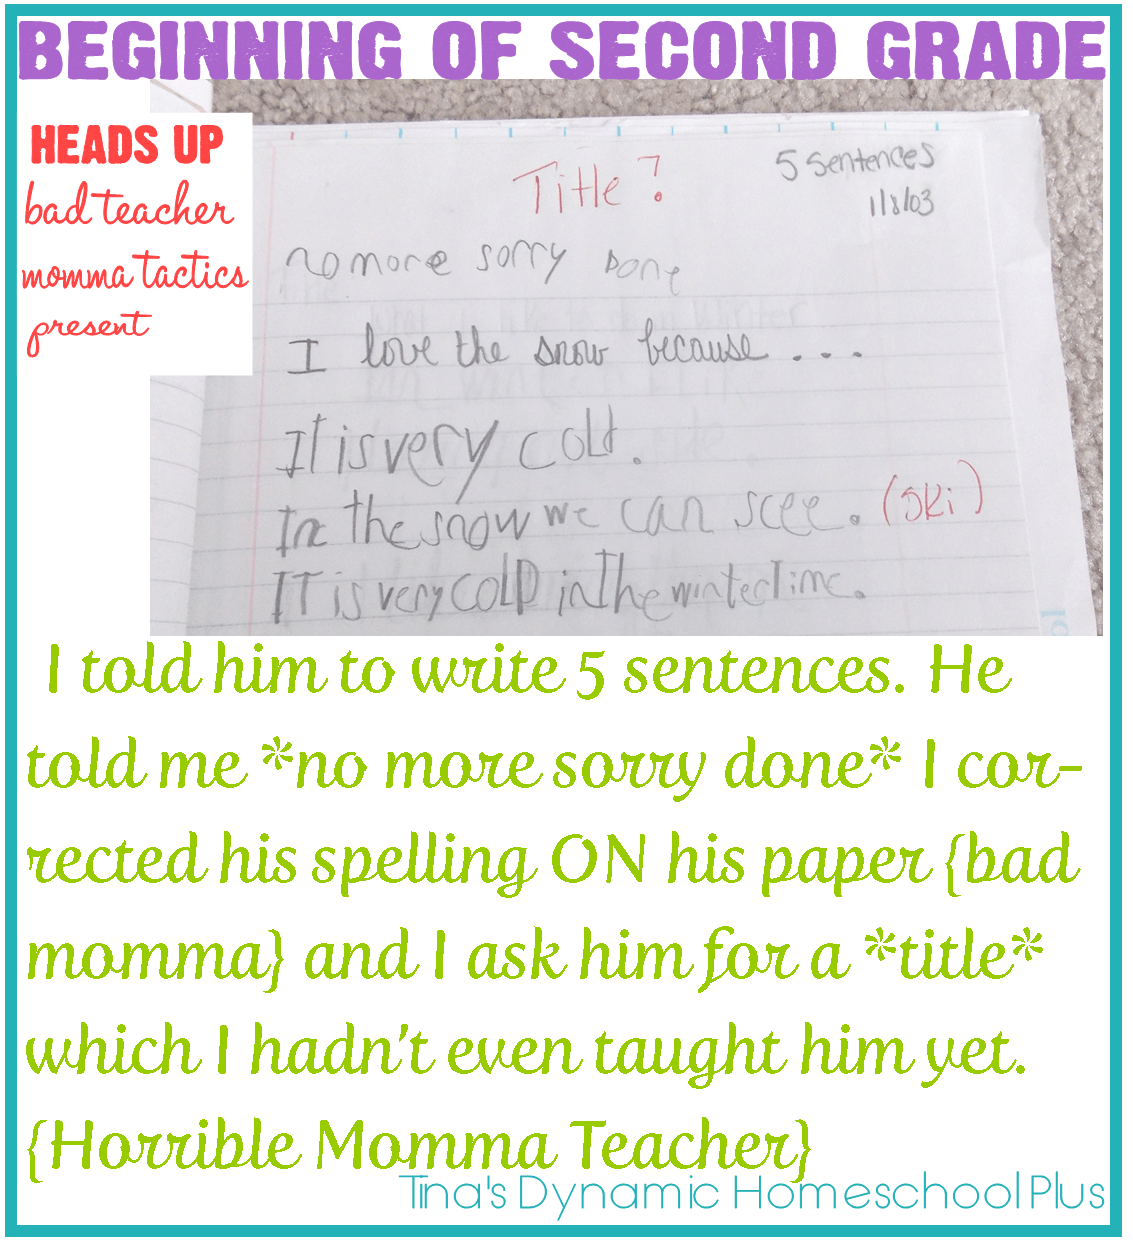 Teaching Handwriting When Homeschooling the Early Years Part 3 Beginning of Second Grade 1 Teaching Handwriting When Homeschooling the Early Years Part 3